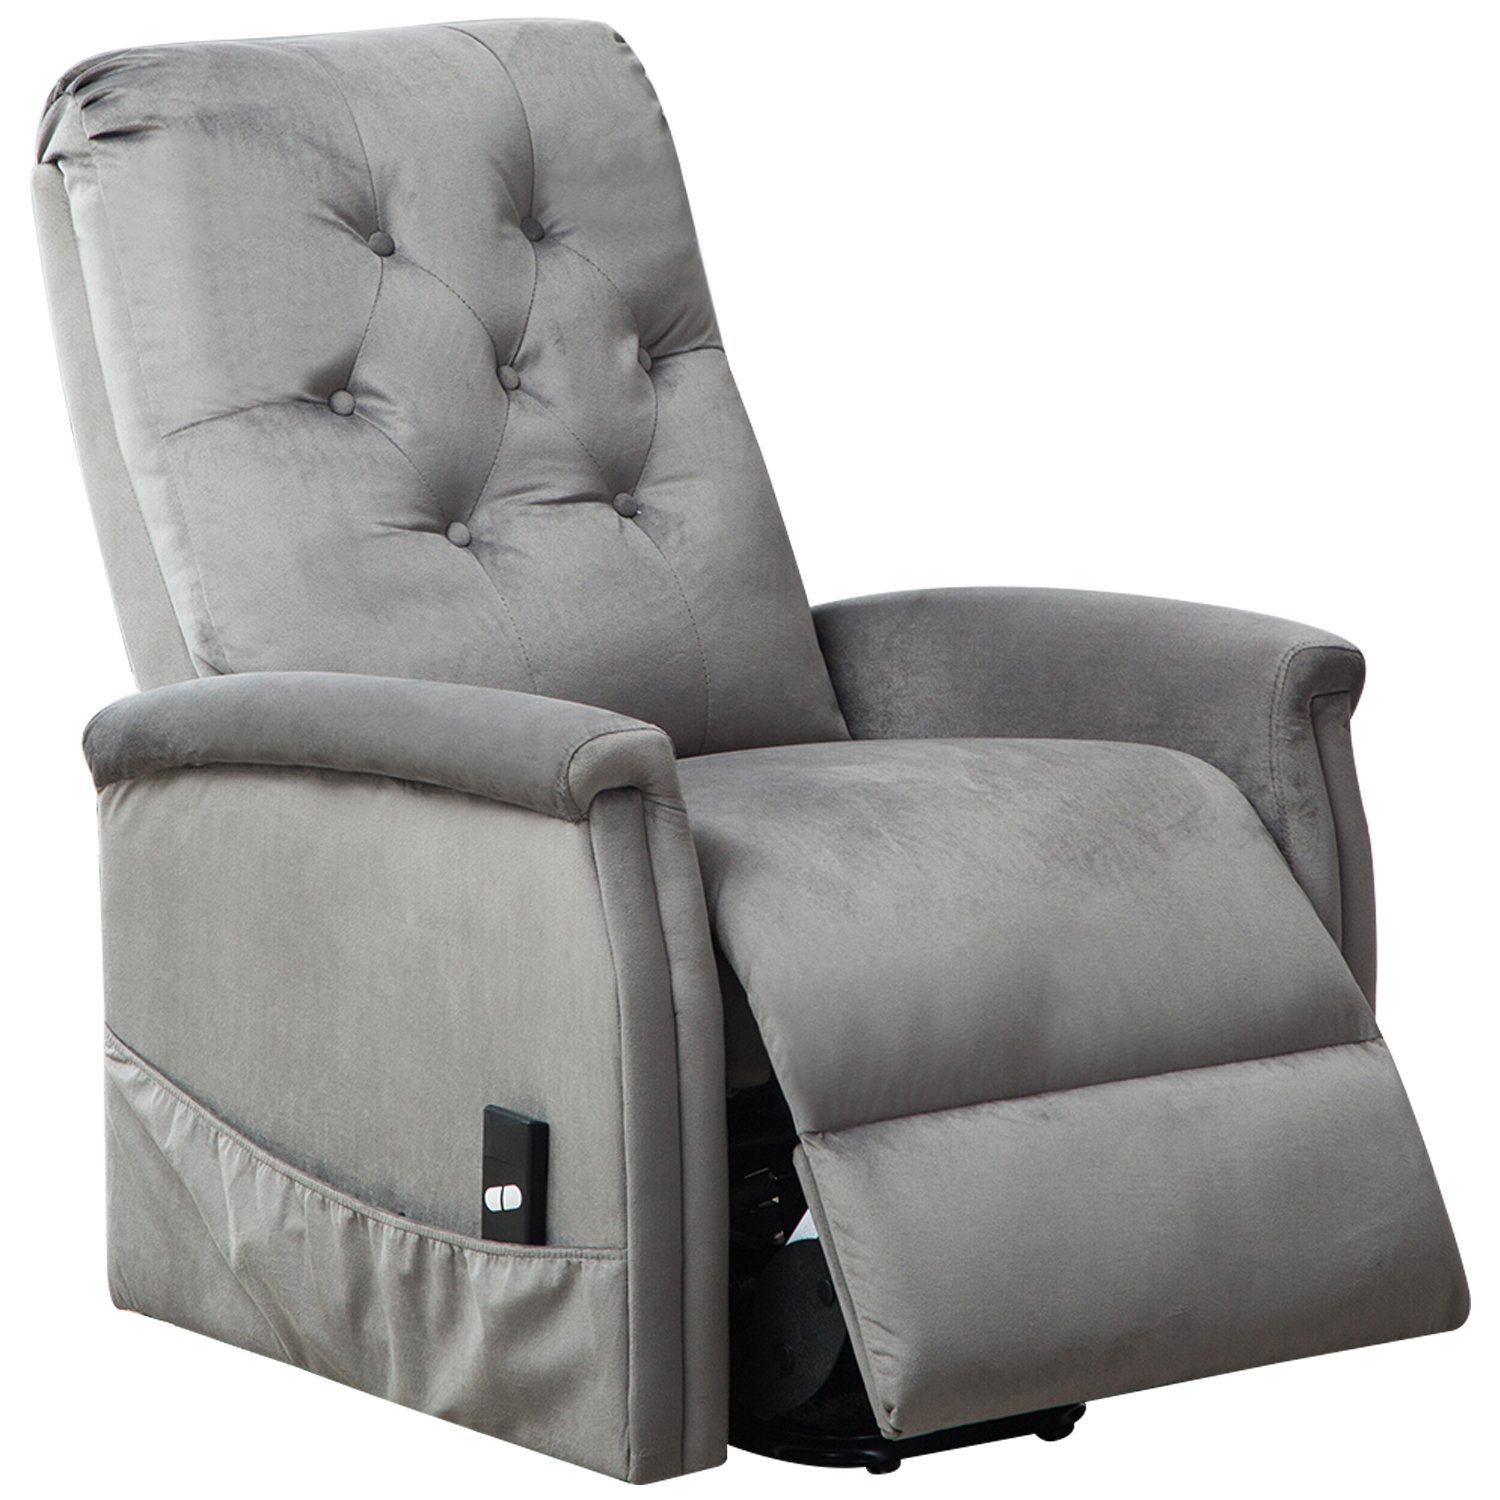 BONZY Power Lift Chair Tufted Recliners Living Room Electric Lifting/Reclining Chairs Furniture - Light Gray